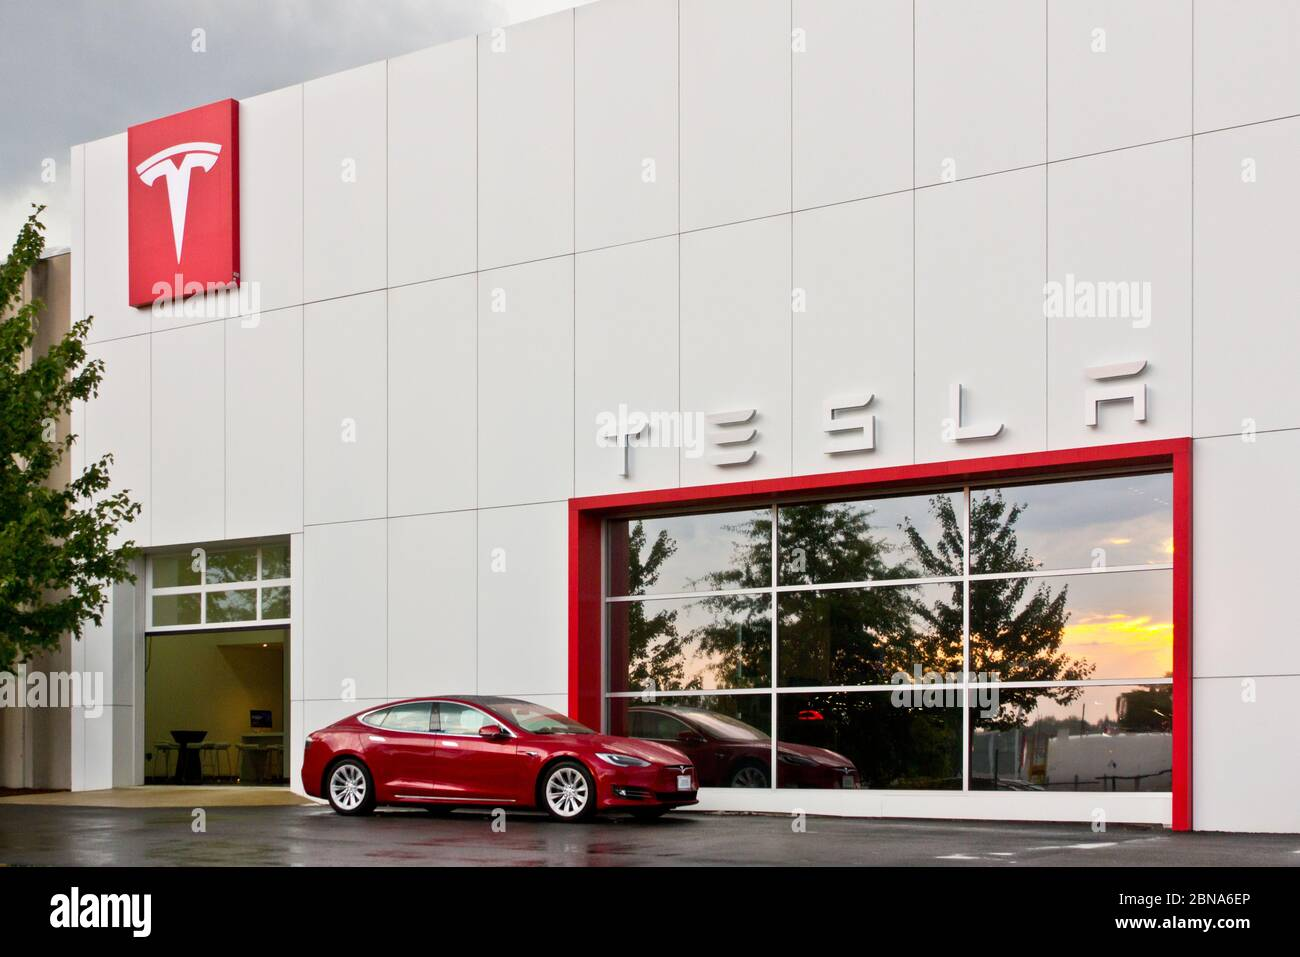 Exterior of Tesla Tysons Corner-Tyco Road store, Vienna, Virginia, USA, with red Model S electric car in front of window reflecting sunset post-storm Stock Photo